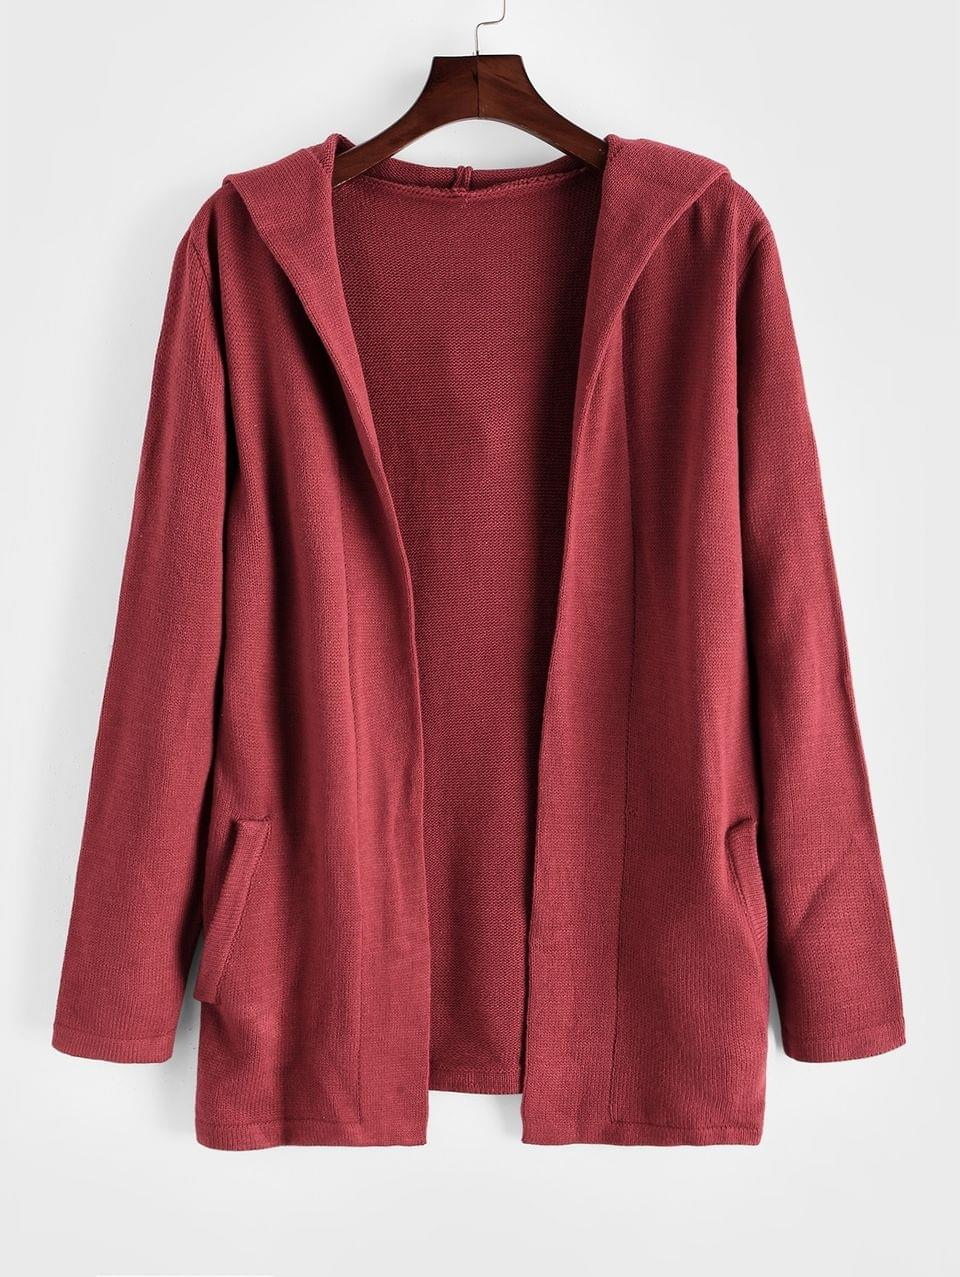 Men's Plain Open Front Hooded Cardigan - Red M